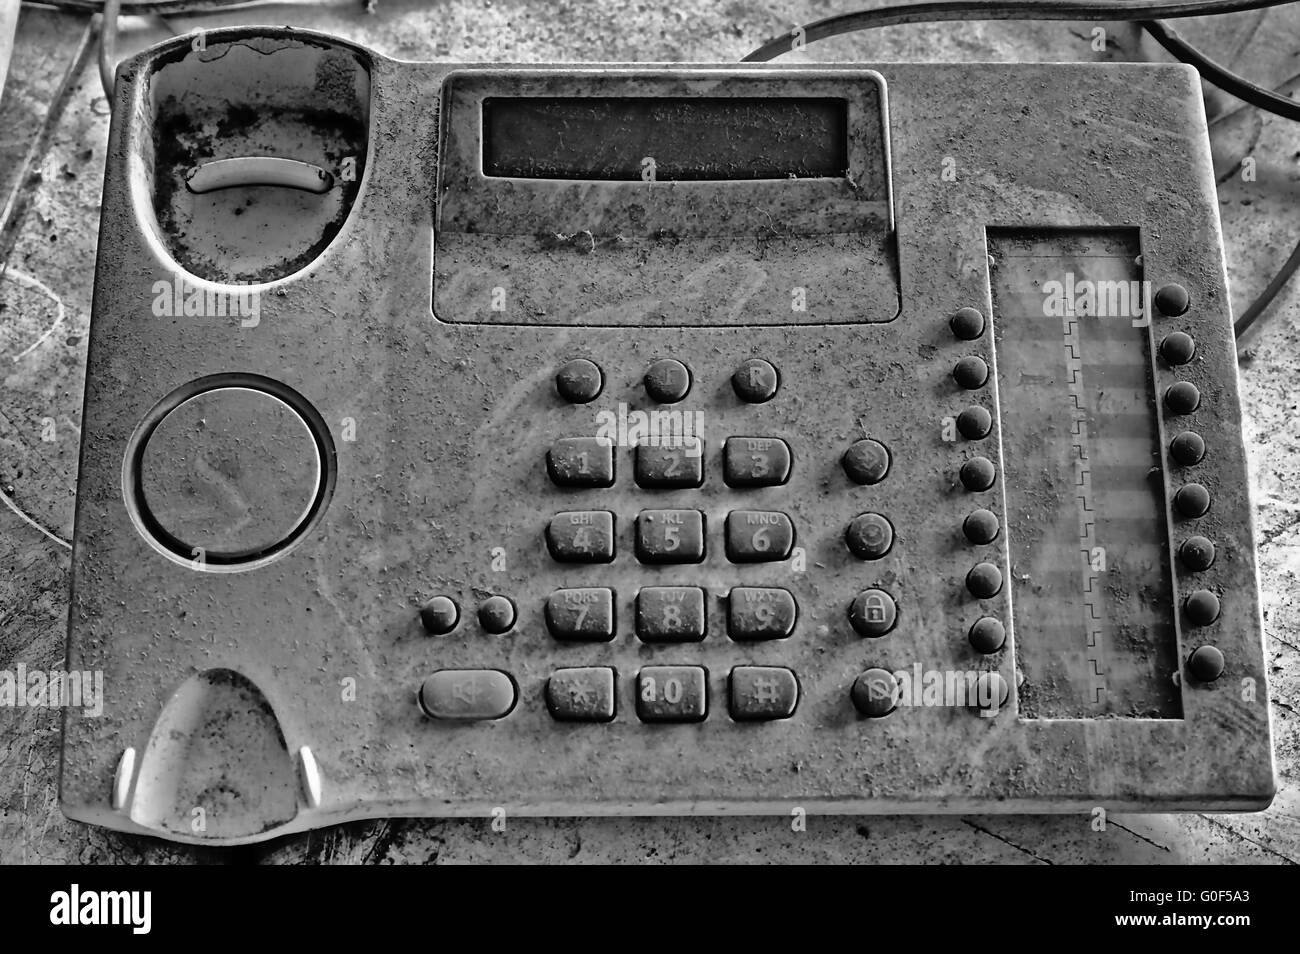 Filthy telephone without handset - Stock Image